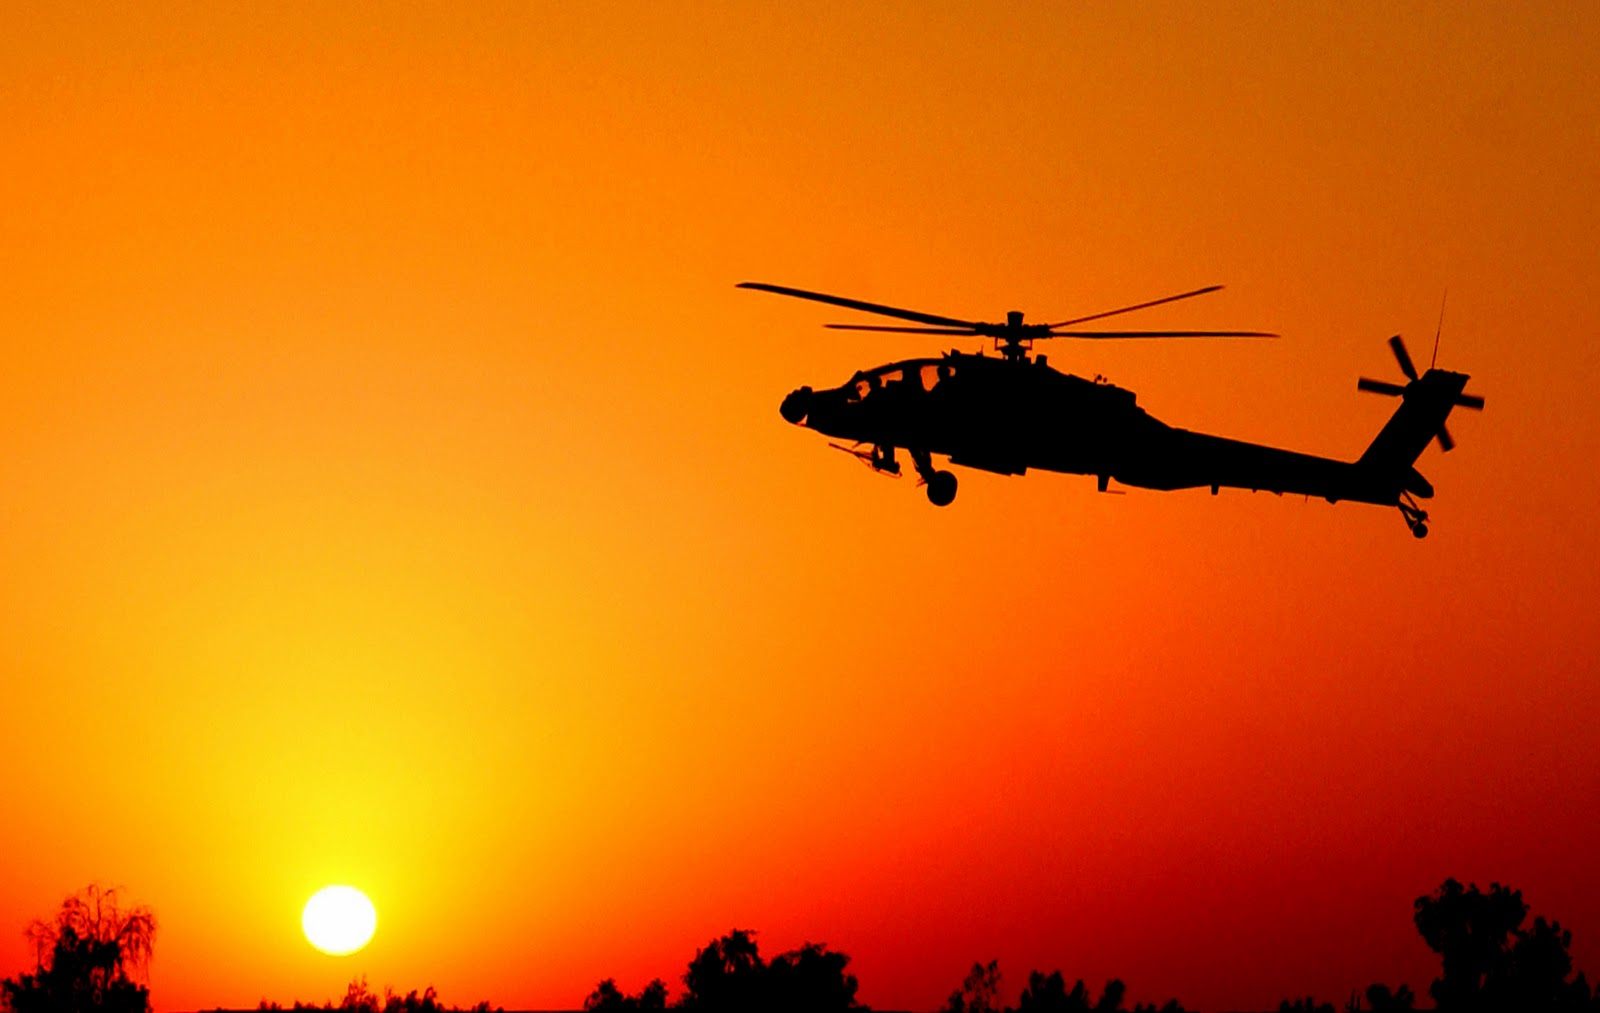 Apache Helicopters Sunset HD Wallpapers Download Wallpapers in HD 1600x1013